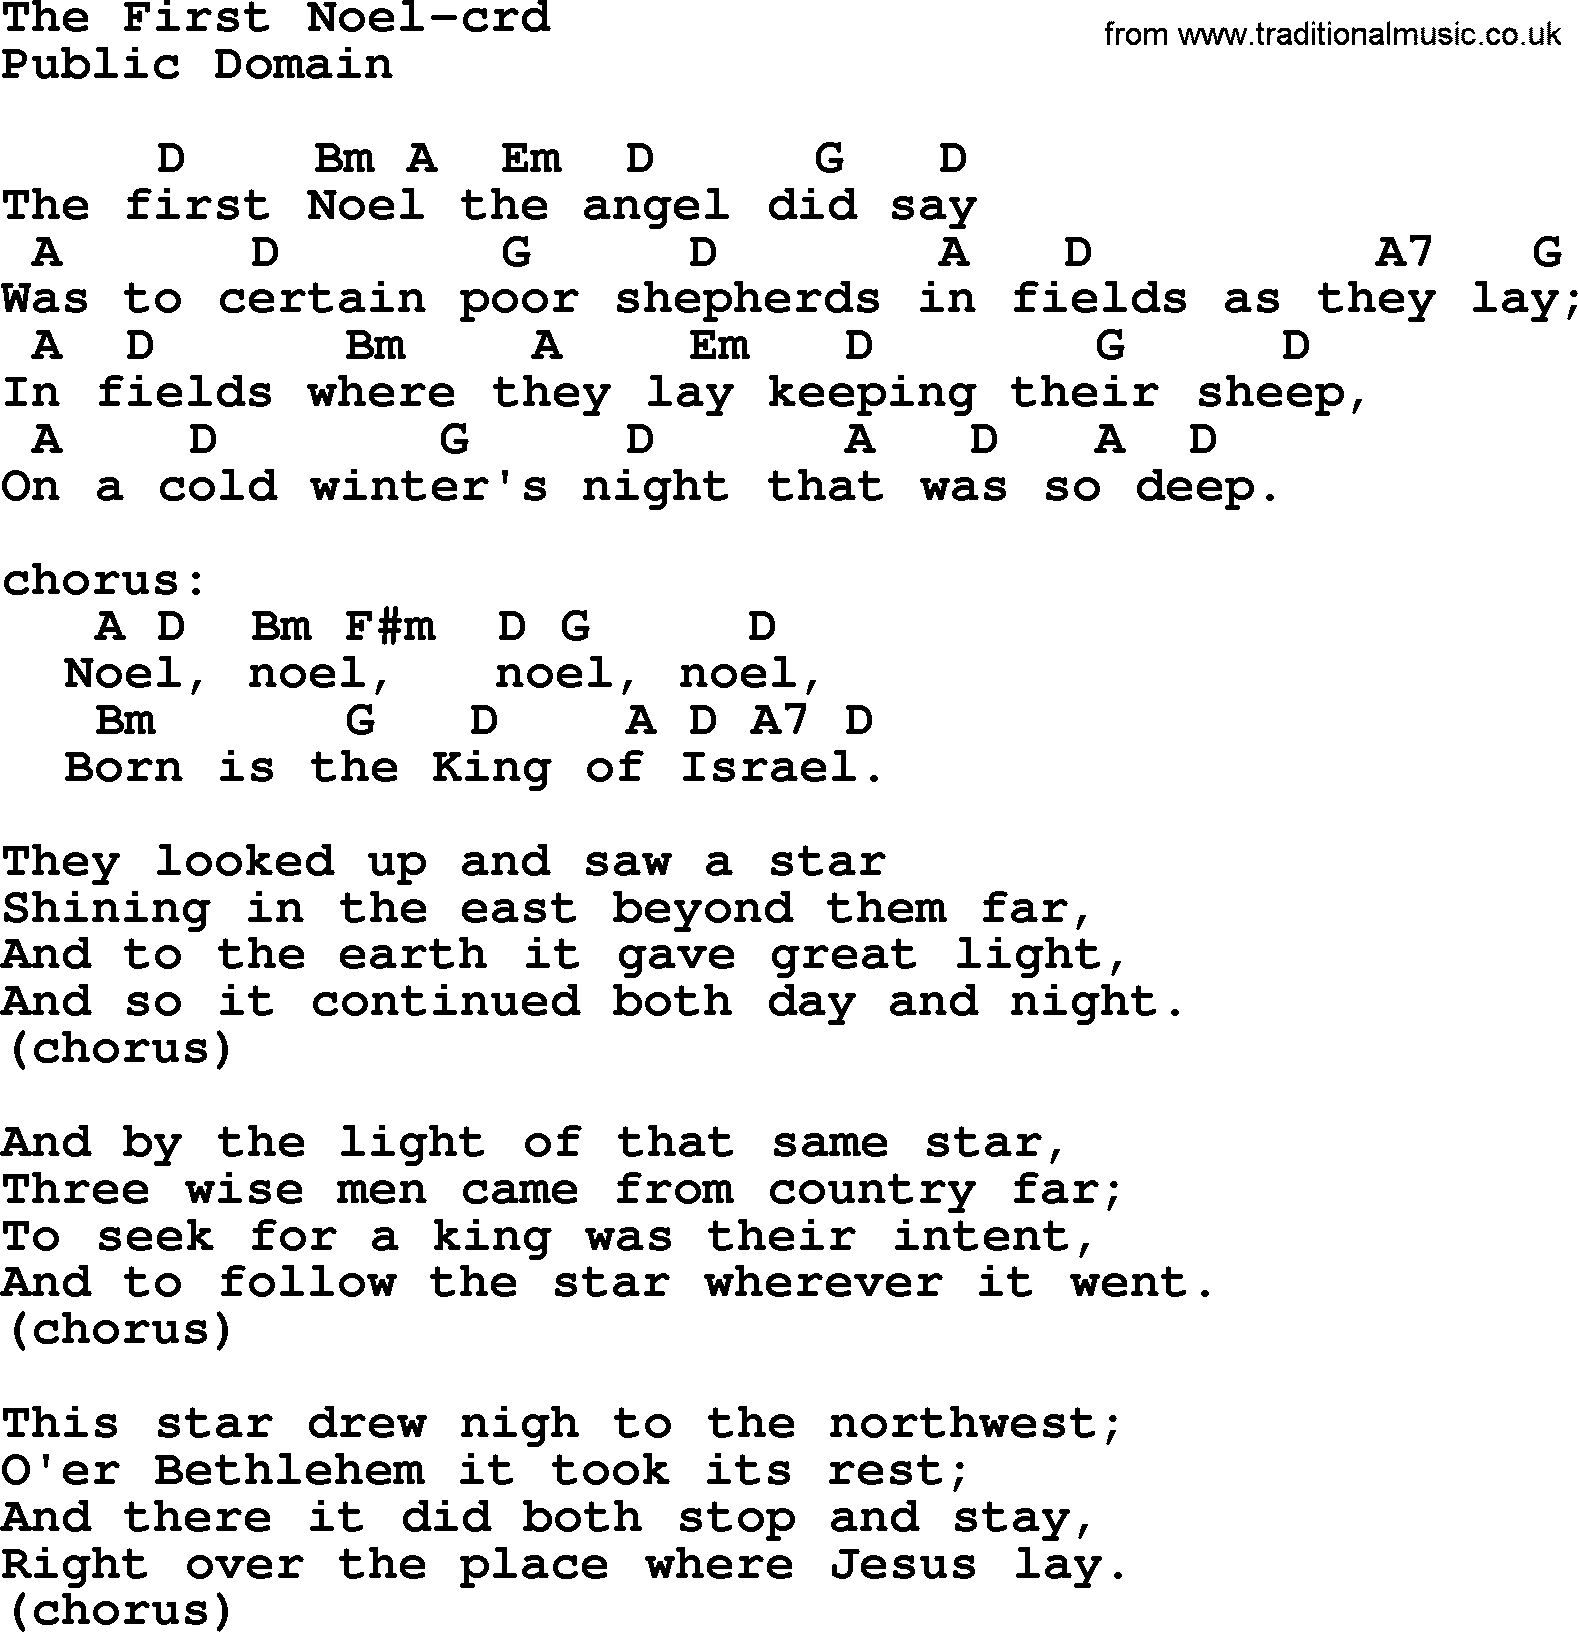 The First Noel Chords and Lyrics - riffspot.com